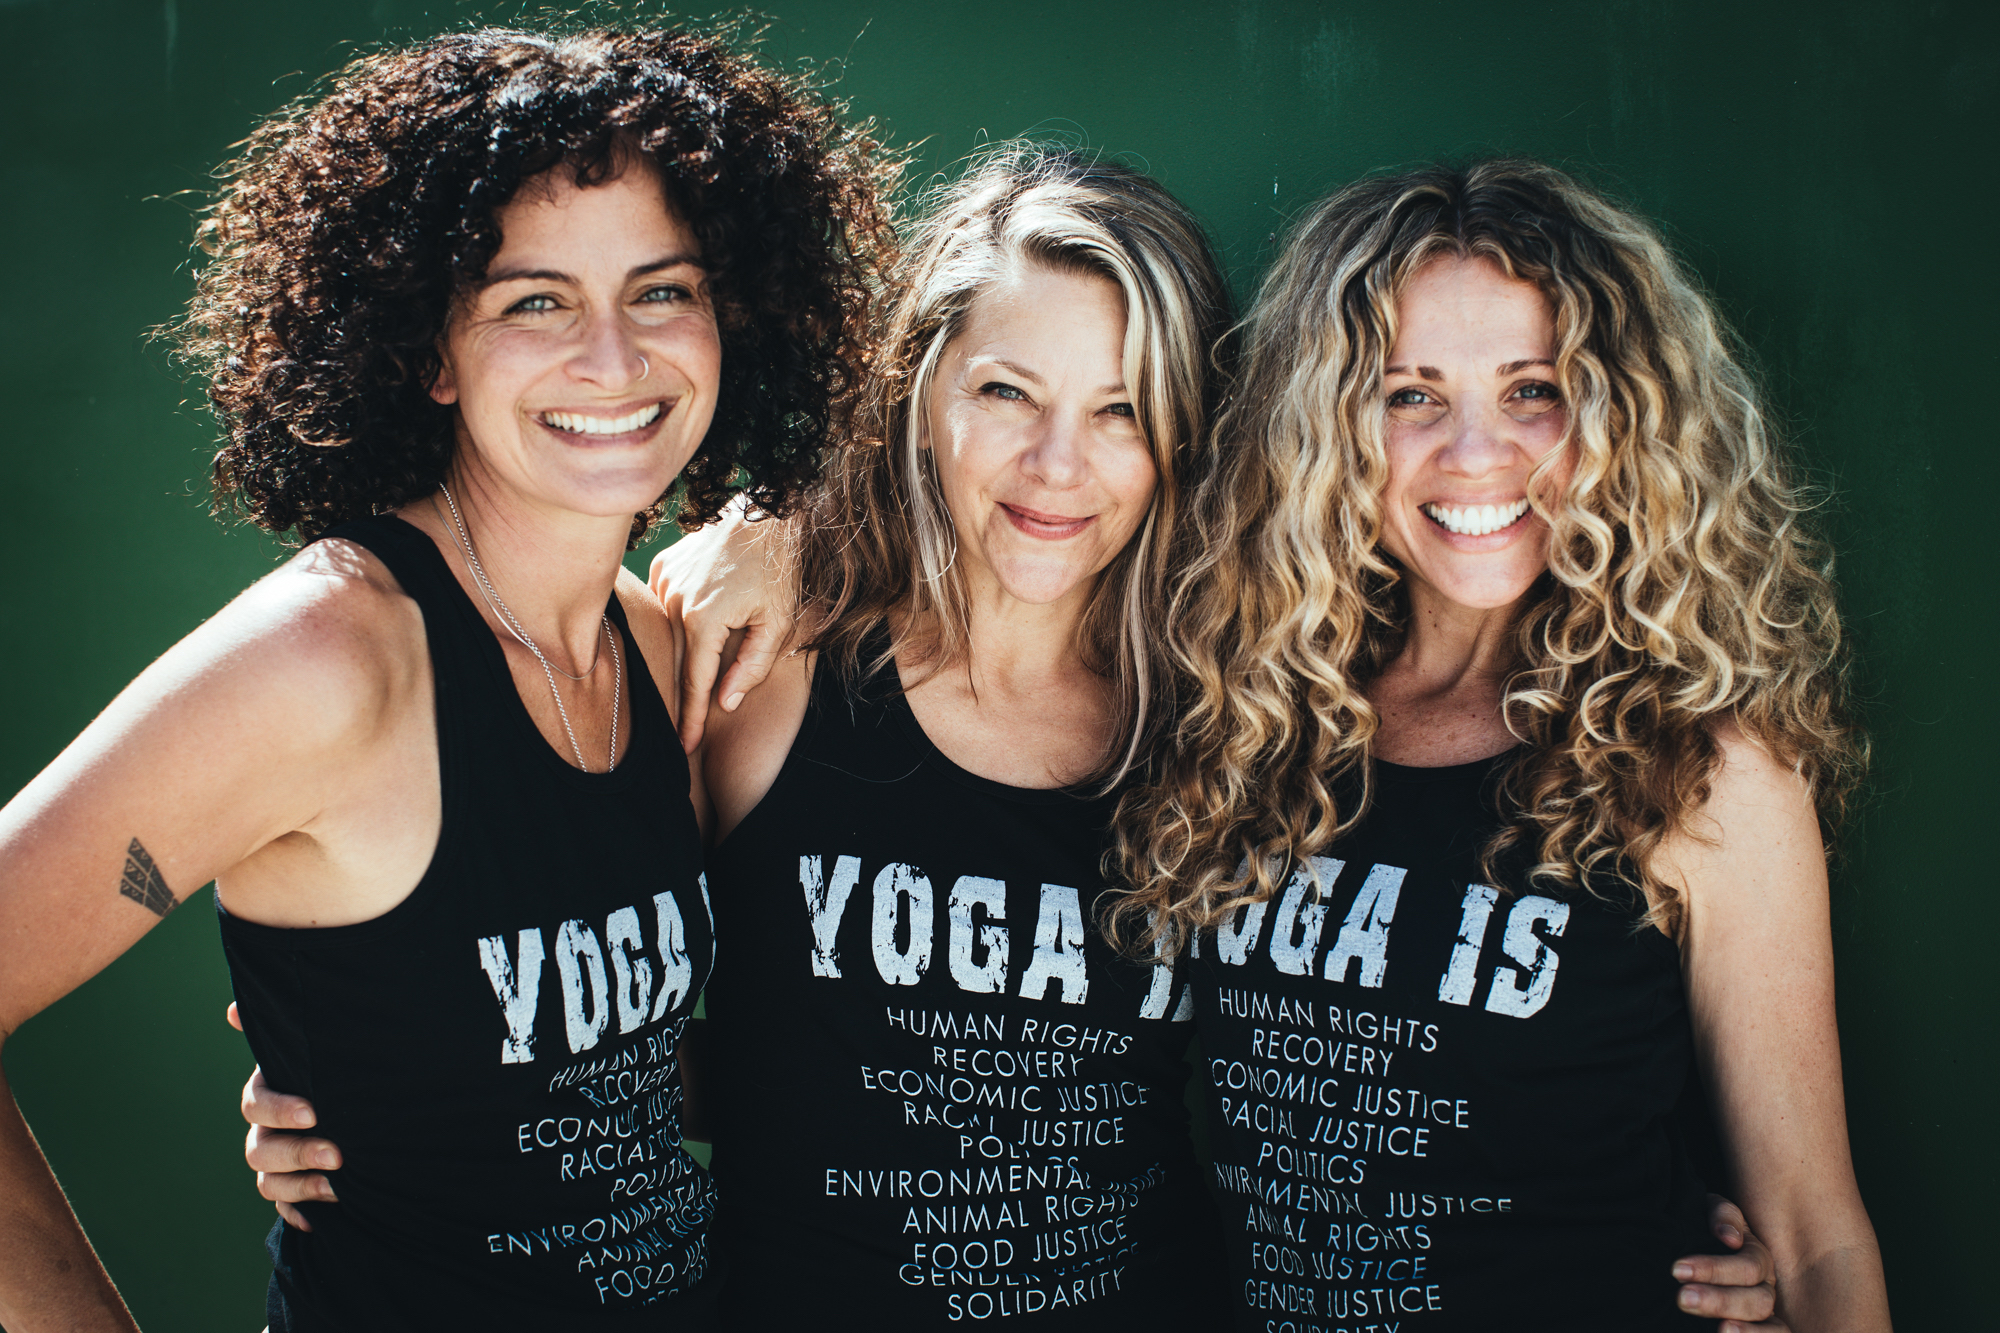 Seane Corn   ,    Hala Khouri, M.A.   , &    Suzanne Sterling     are internationally known for their yoga practice as activism work. Committed to conscious, sustainable social change, the trio launched OTM in 2007 as a global community-focused leadership training organization for activists.  Meet the rest of our team here.